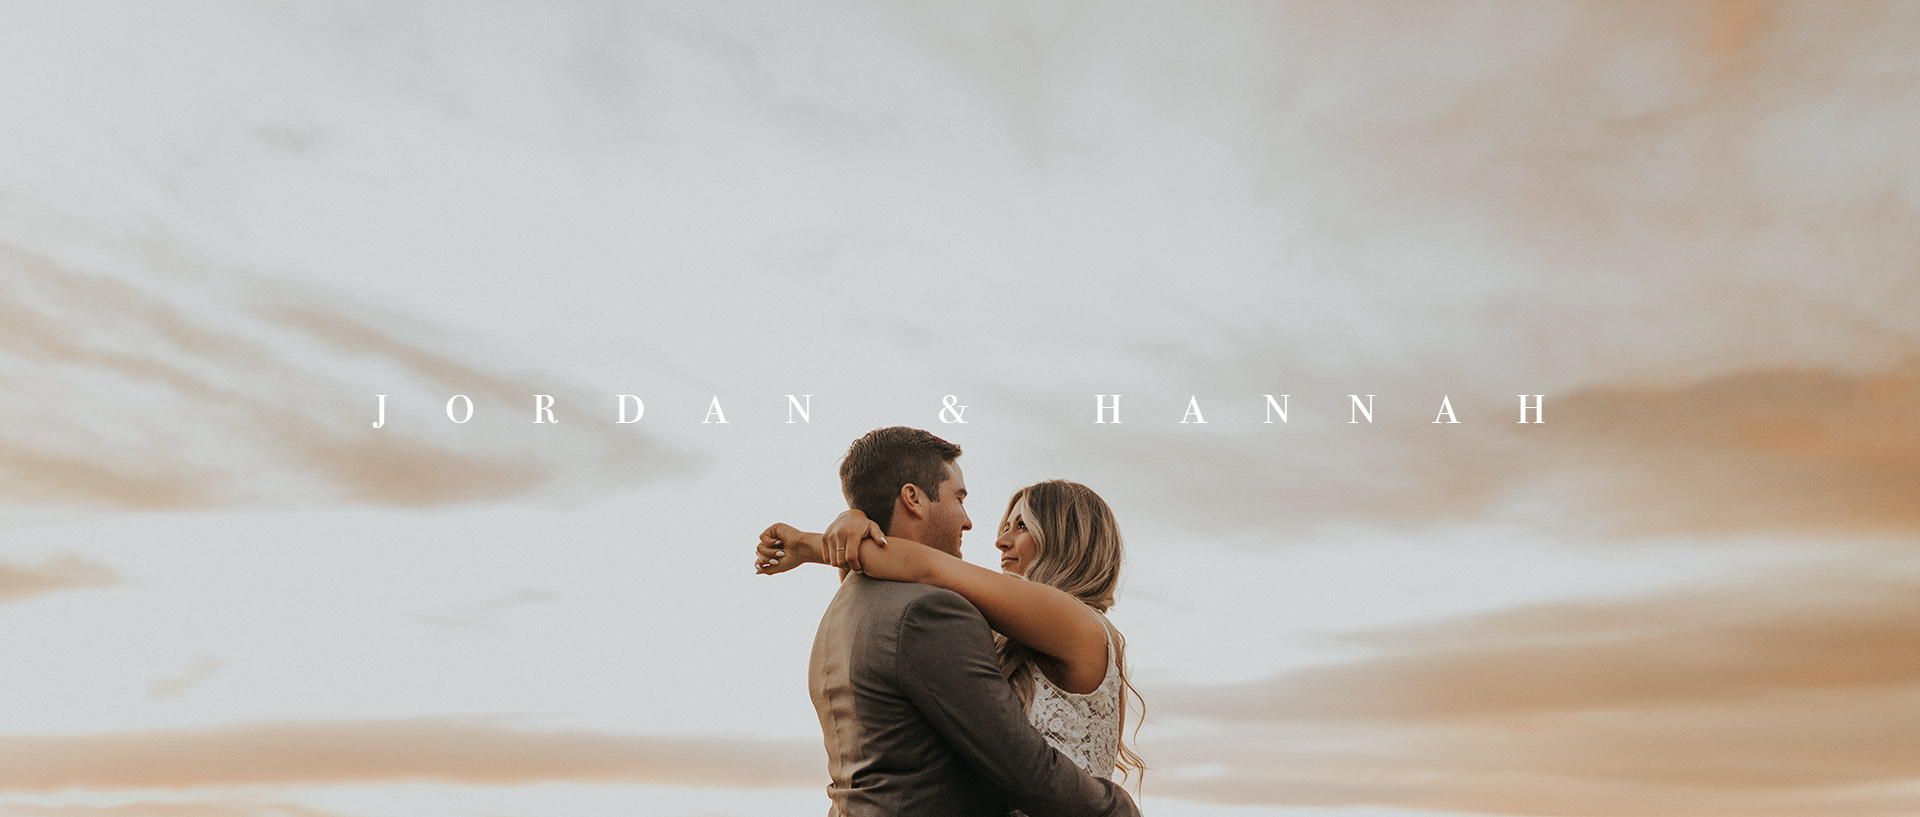 Jordan + Hannah | Julian, California | Sacred Mountain